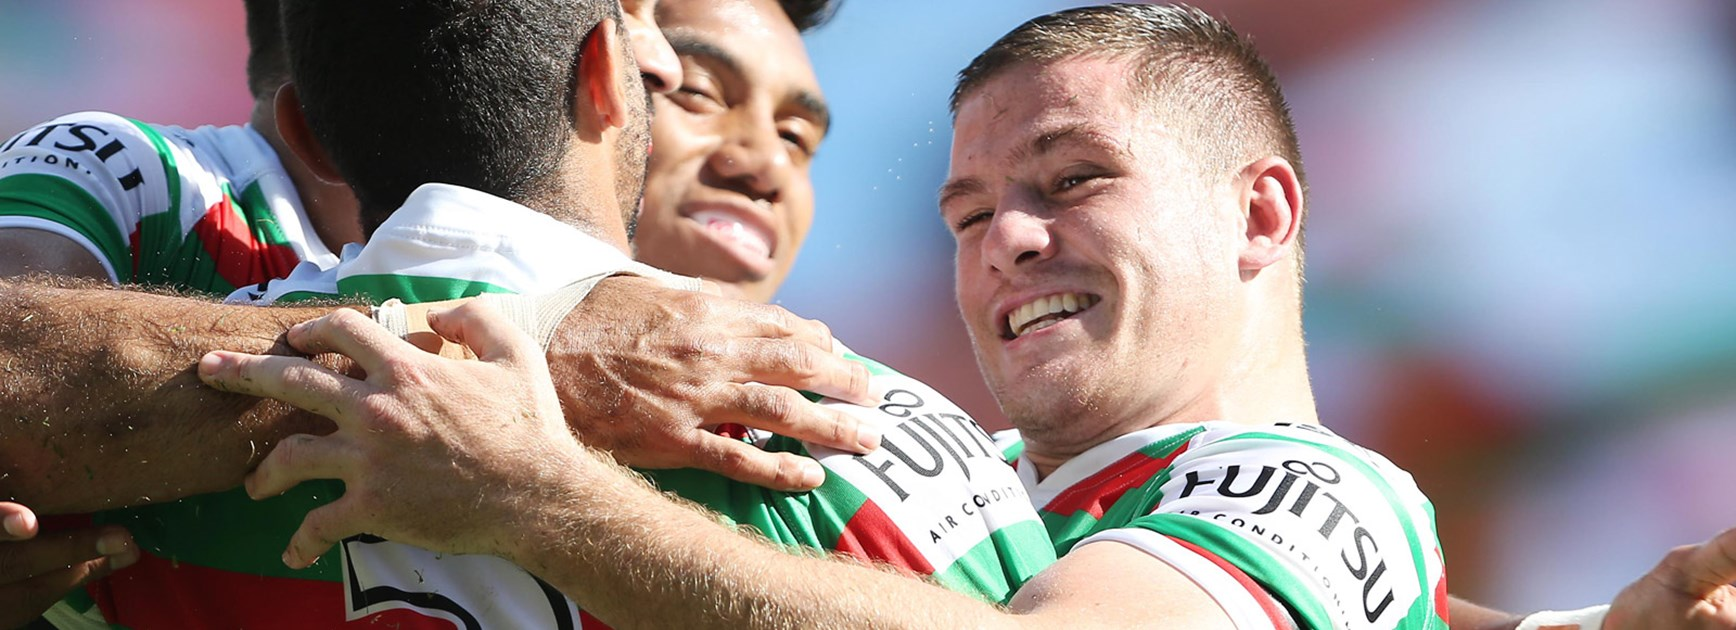 Paul Carter celebrates during the Rabbitohs' Round 1 win over the Roosters.